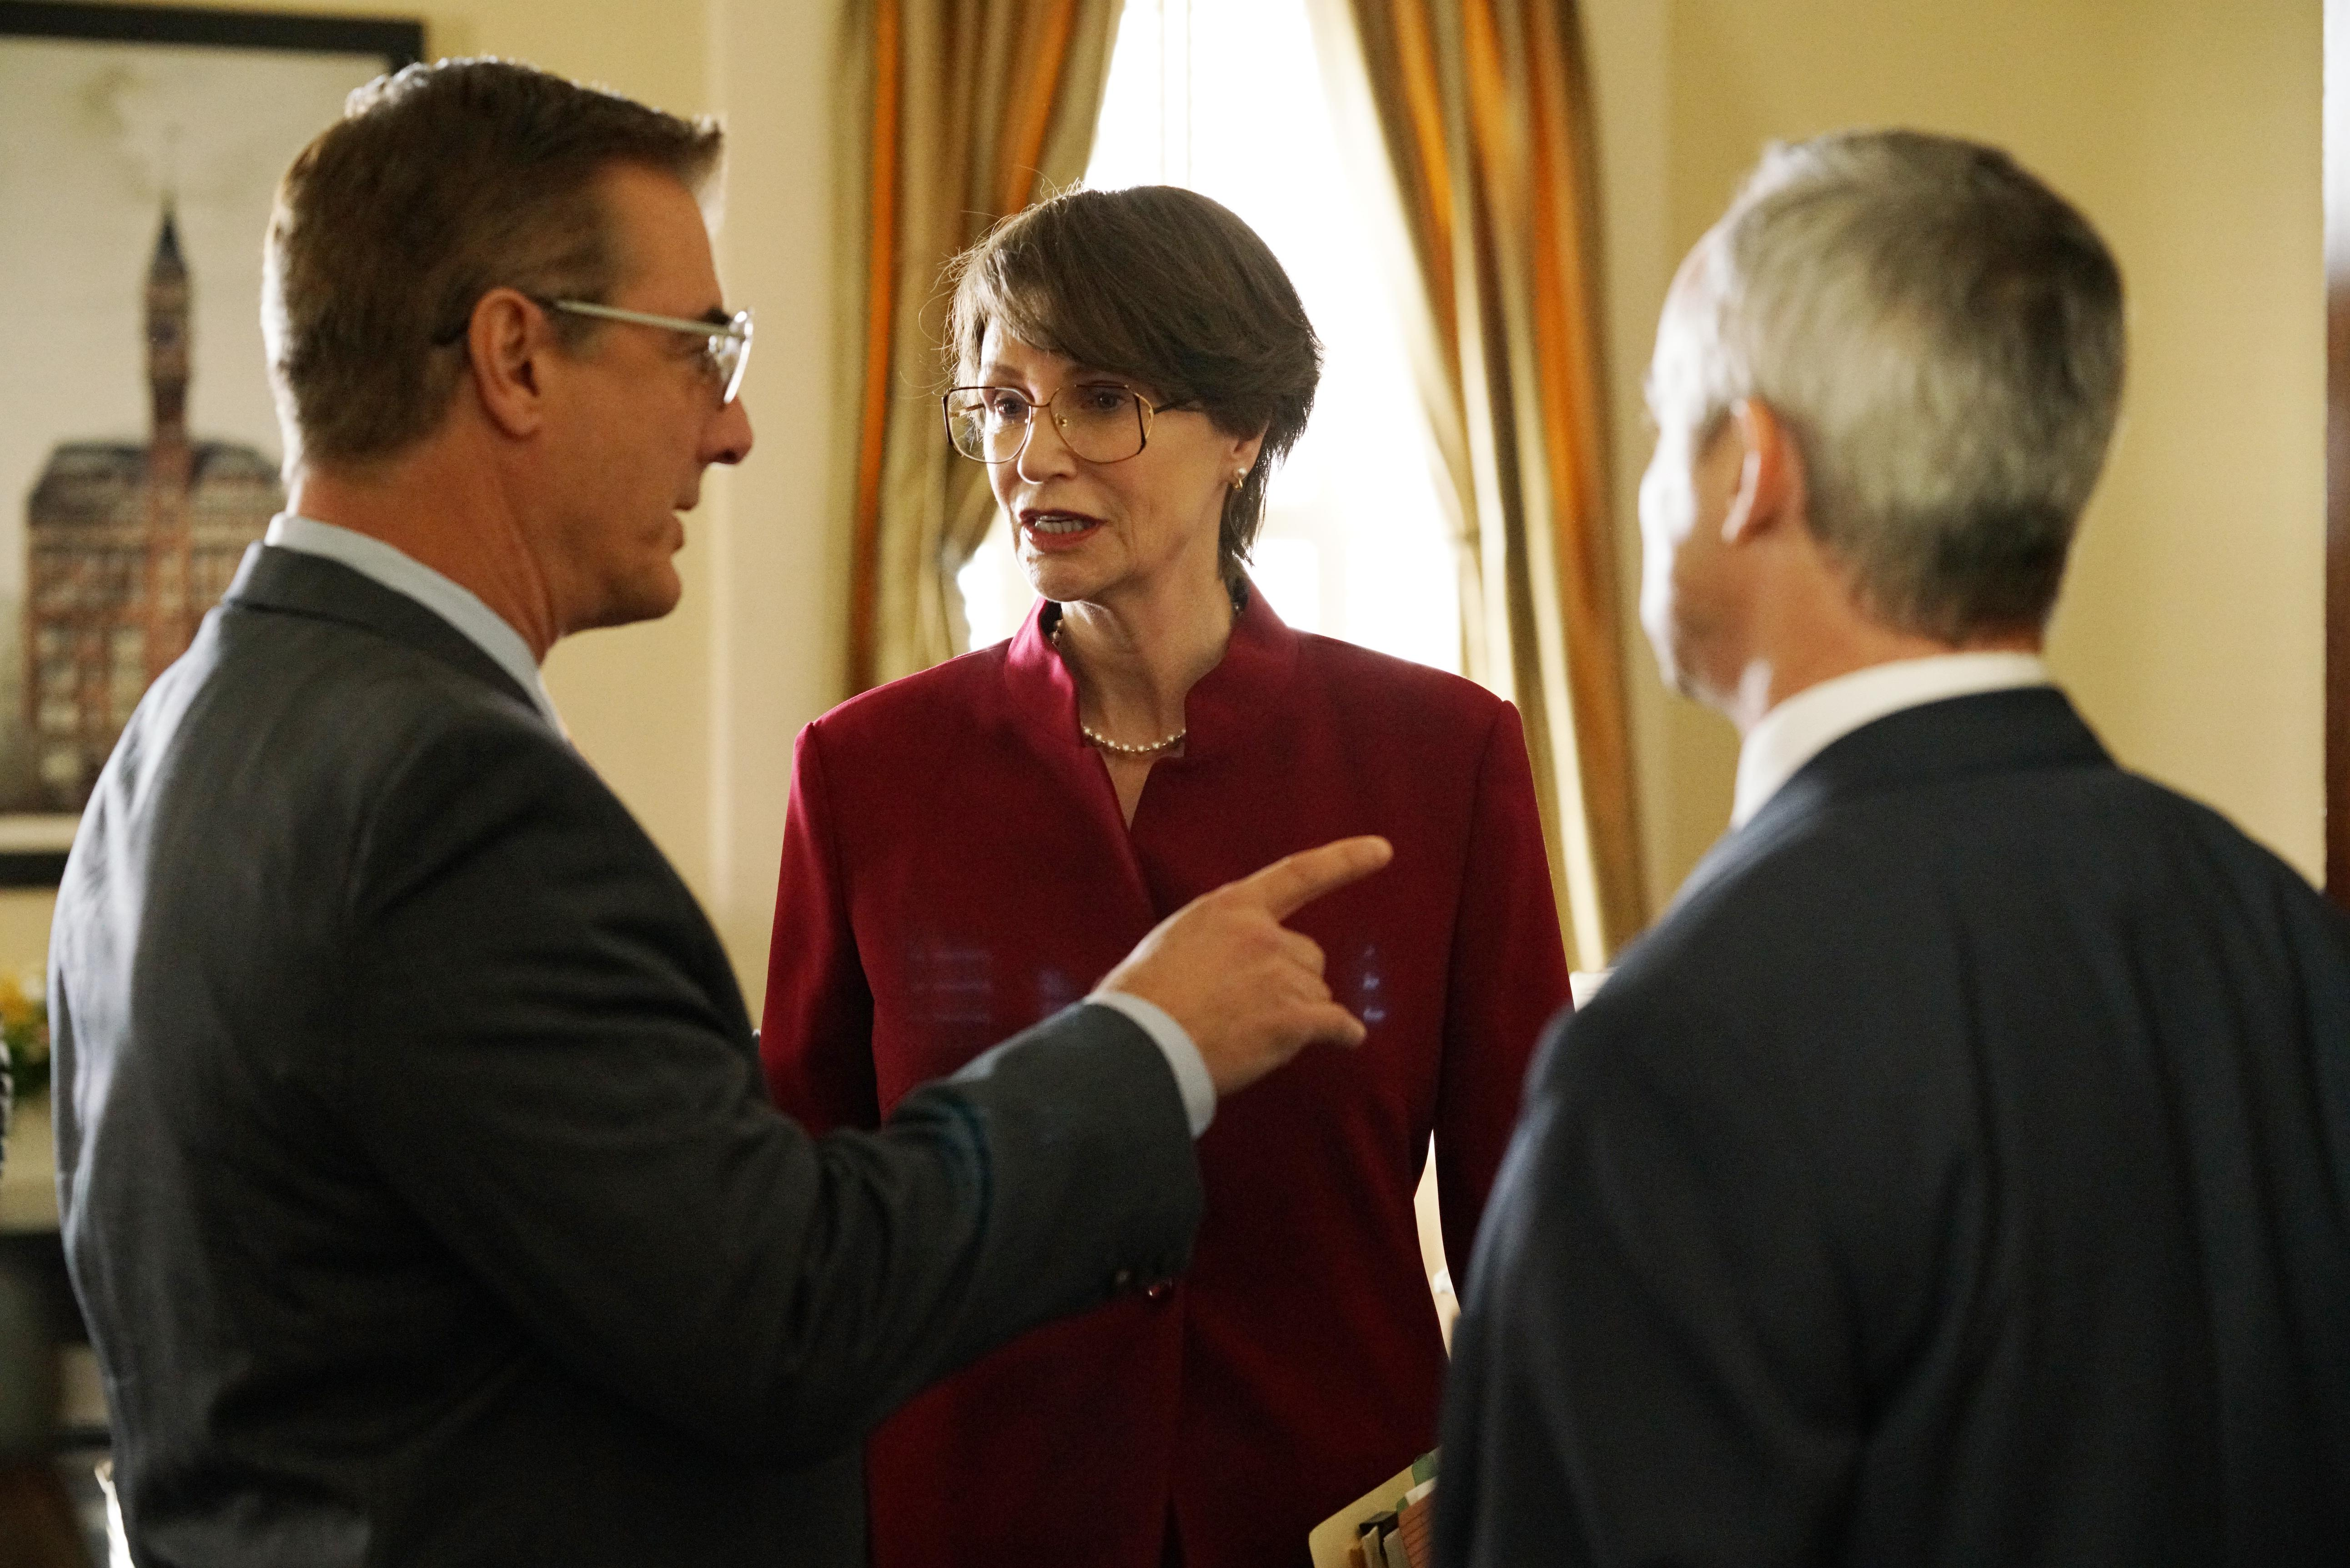 Chris North as Don Ackerman, Jane Lynch as Janet Reno, and Wallace Langham as Louis J. Freeh in Manhunt: Unabomber.